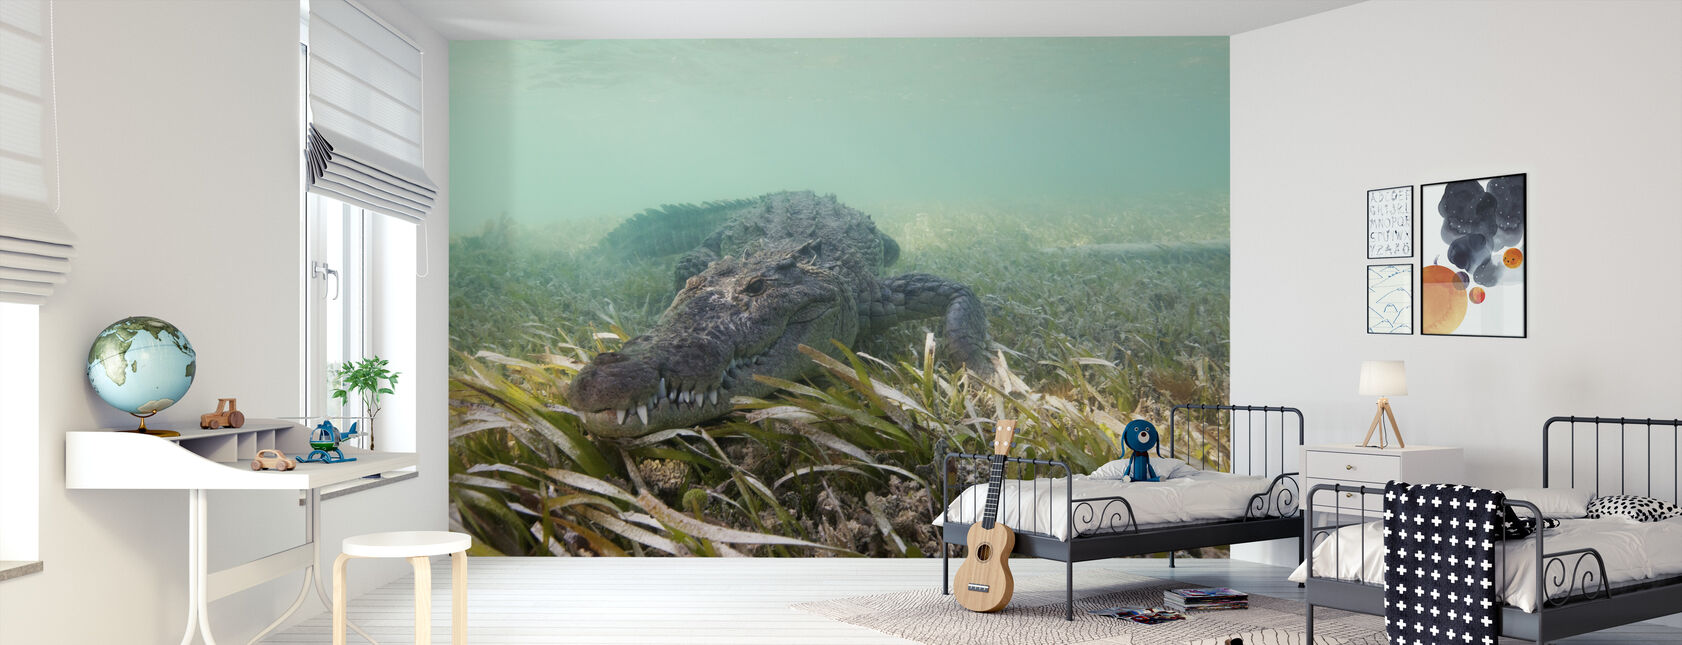 American Crocodile - Wallpaper - Kids Room